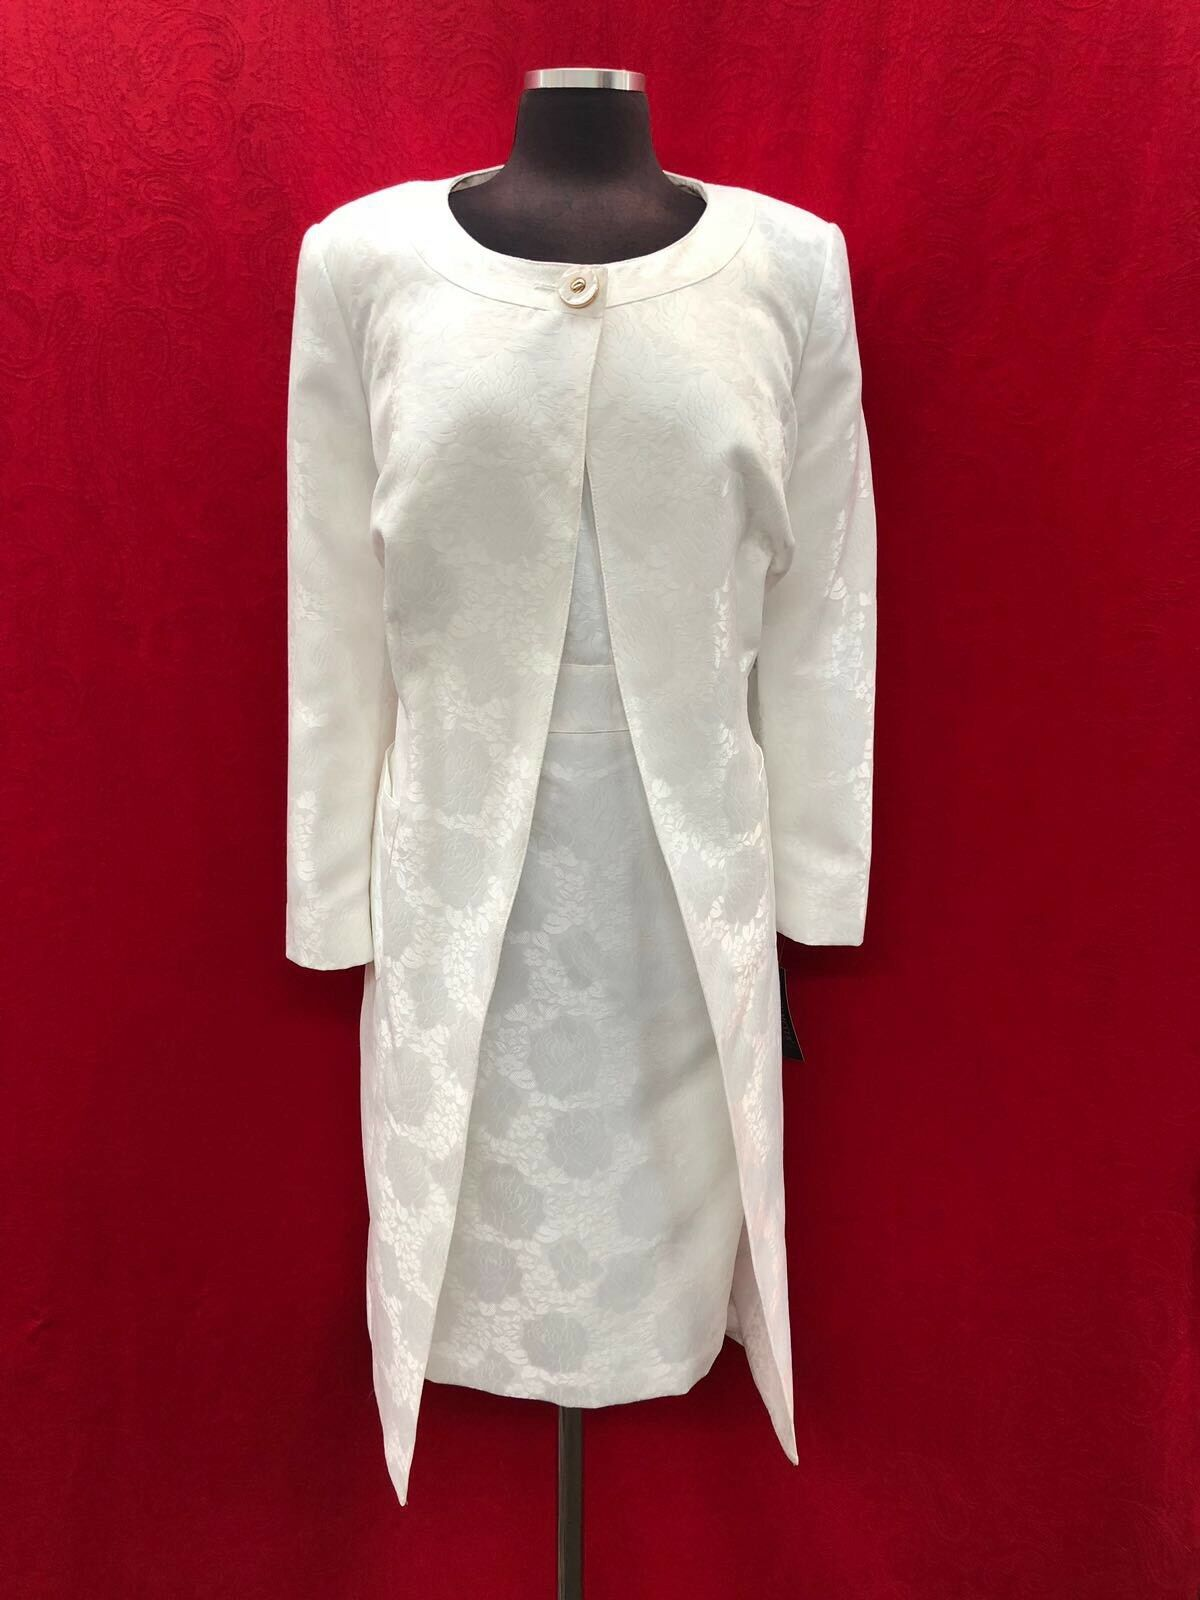 JOHN MEYER DRESS SUIT  WHITE SIZE 14W LENGTH 41  LINED PLUS SIZE NEW WITH TAG